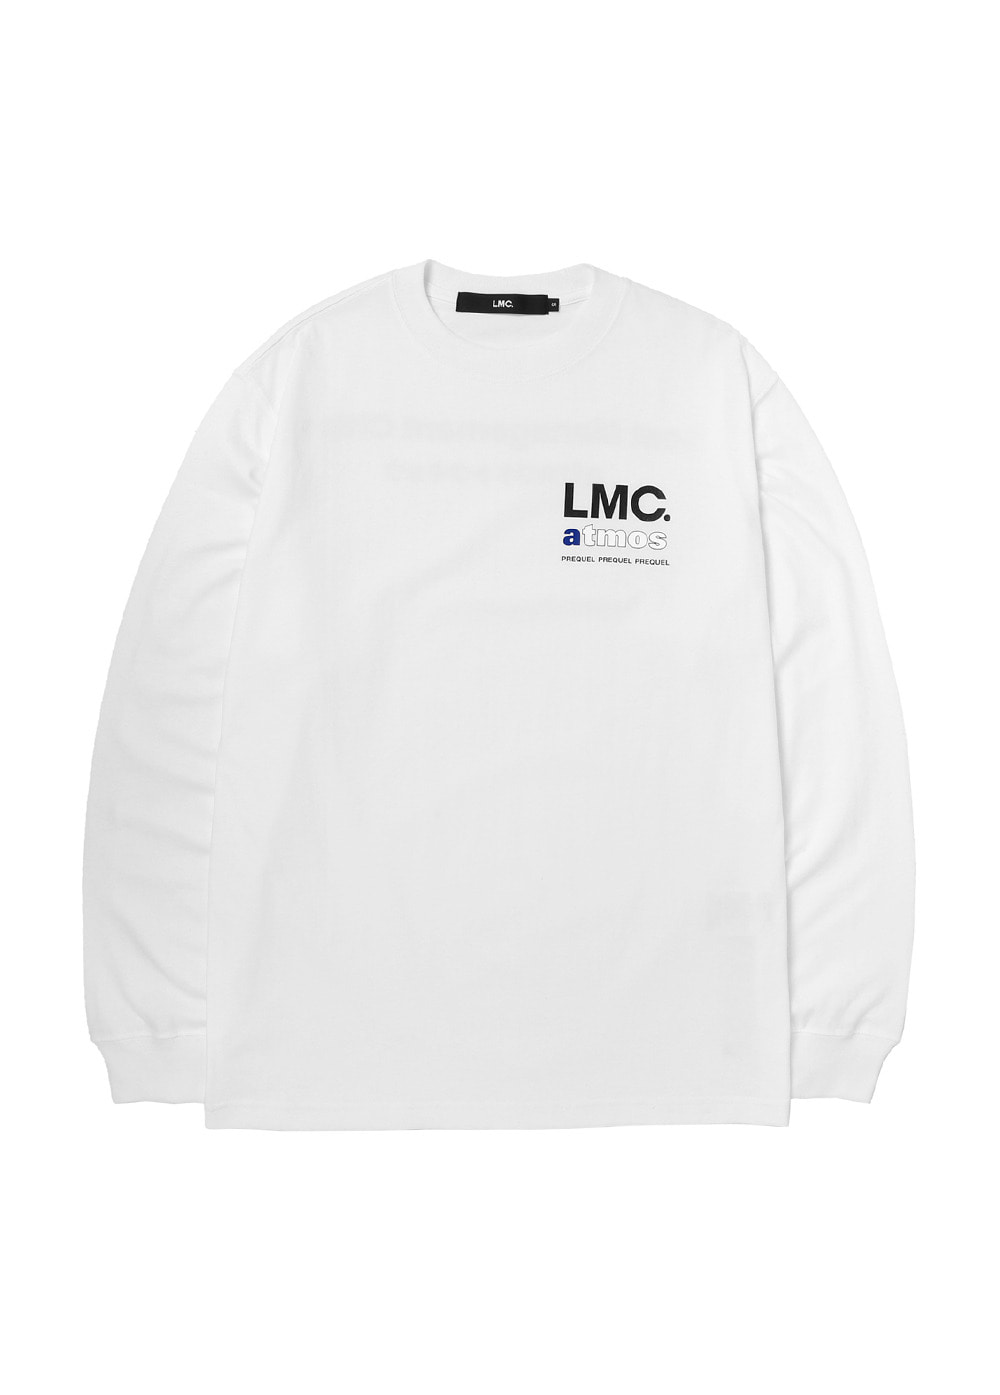 LMC x ATMOS PREQUEL LONG SLV TEE white